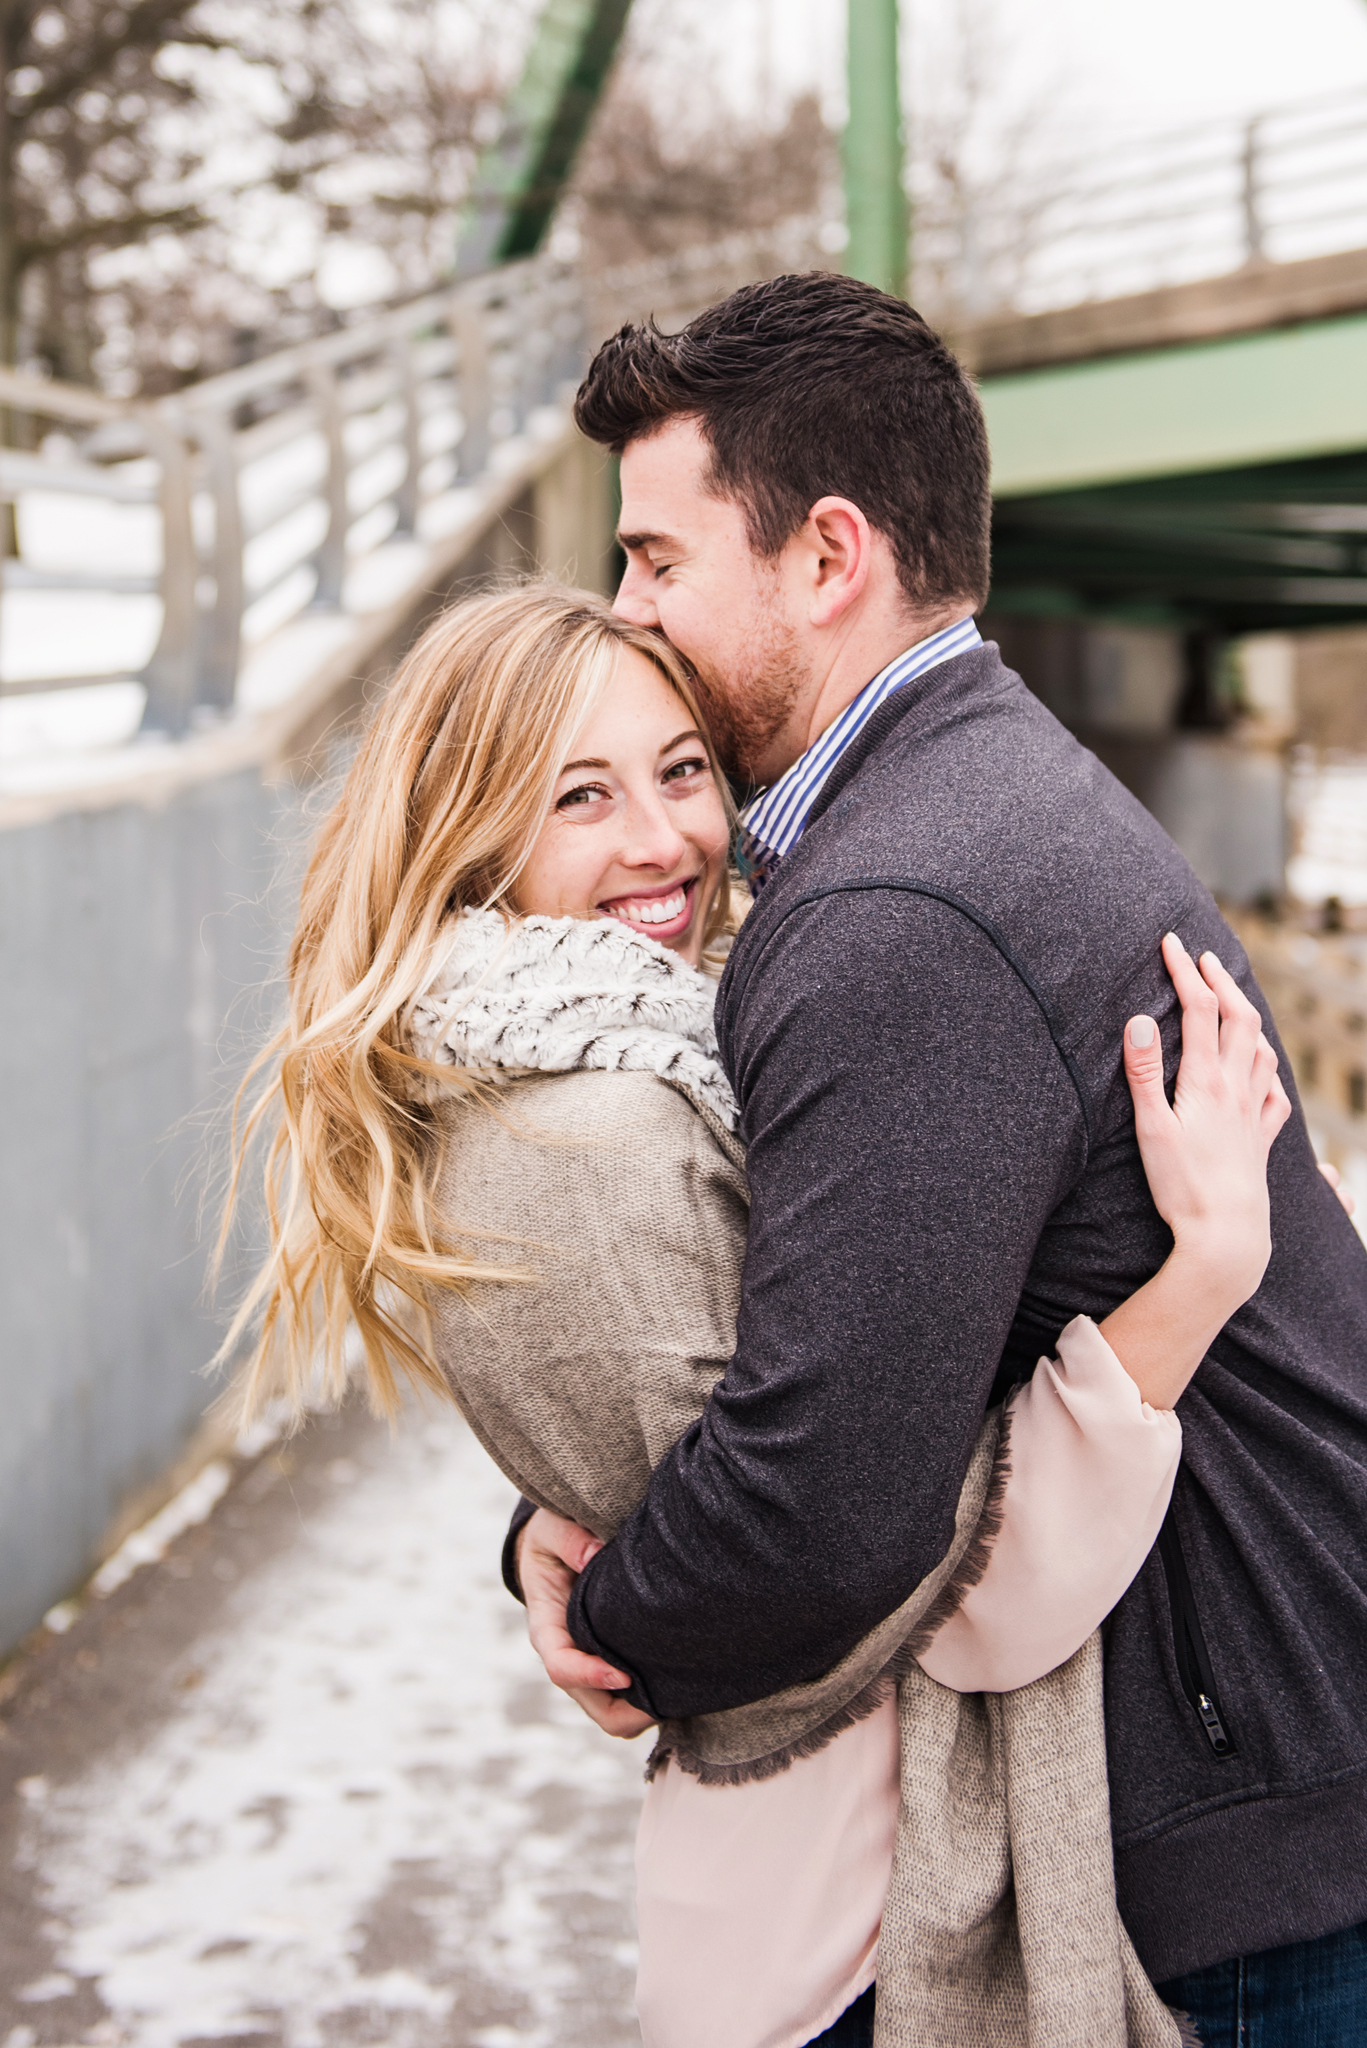 Schoen_Place_Rochester_Engagement_Session_JILL_STUDIO_Rochester_NY_Photographer_DSC_1254.jpg